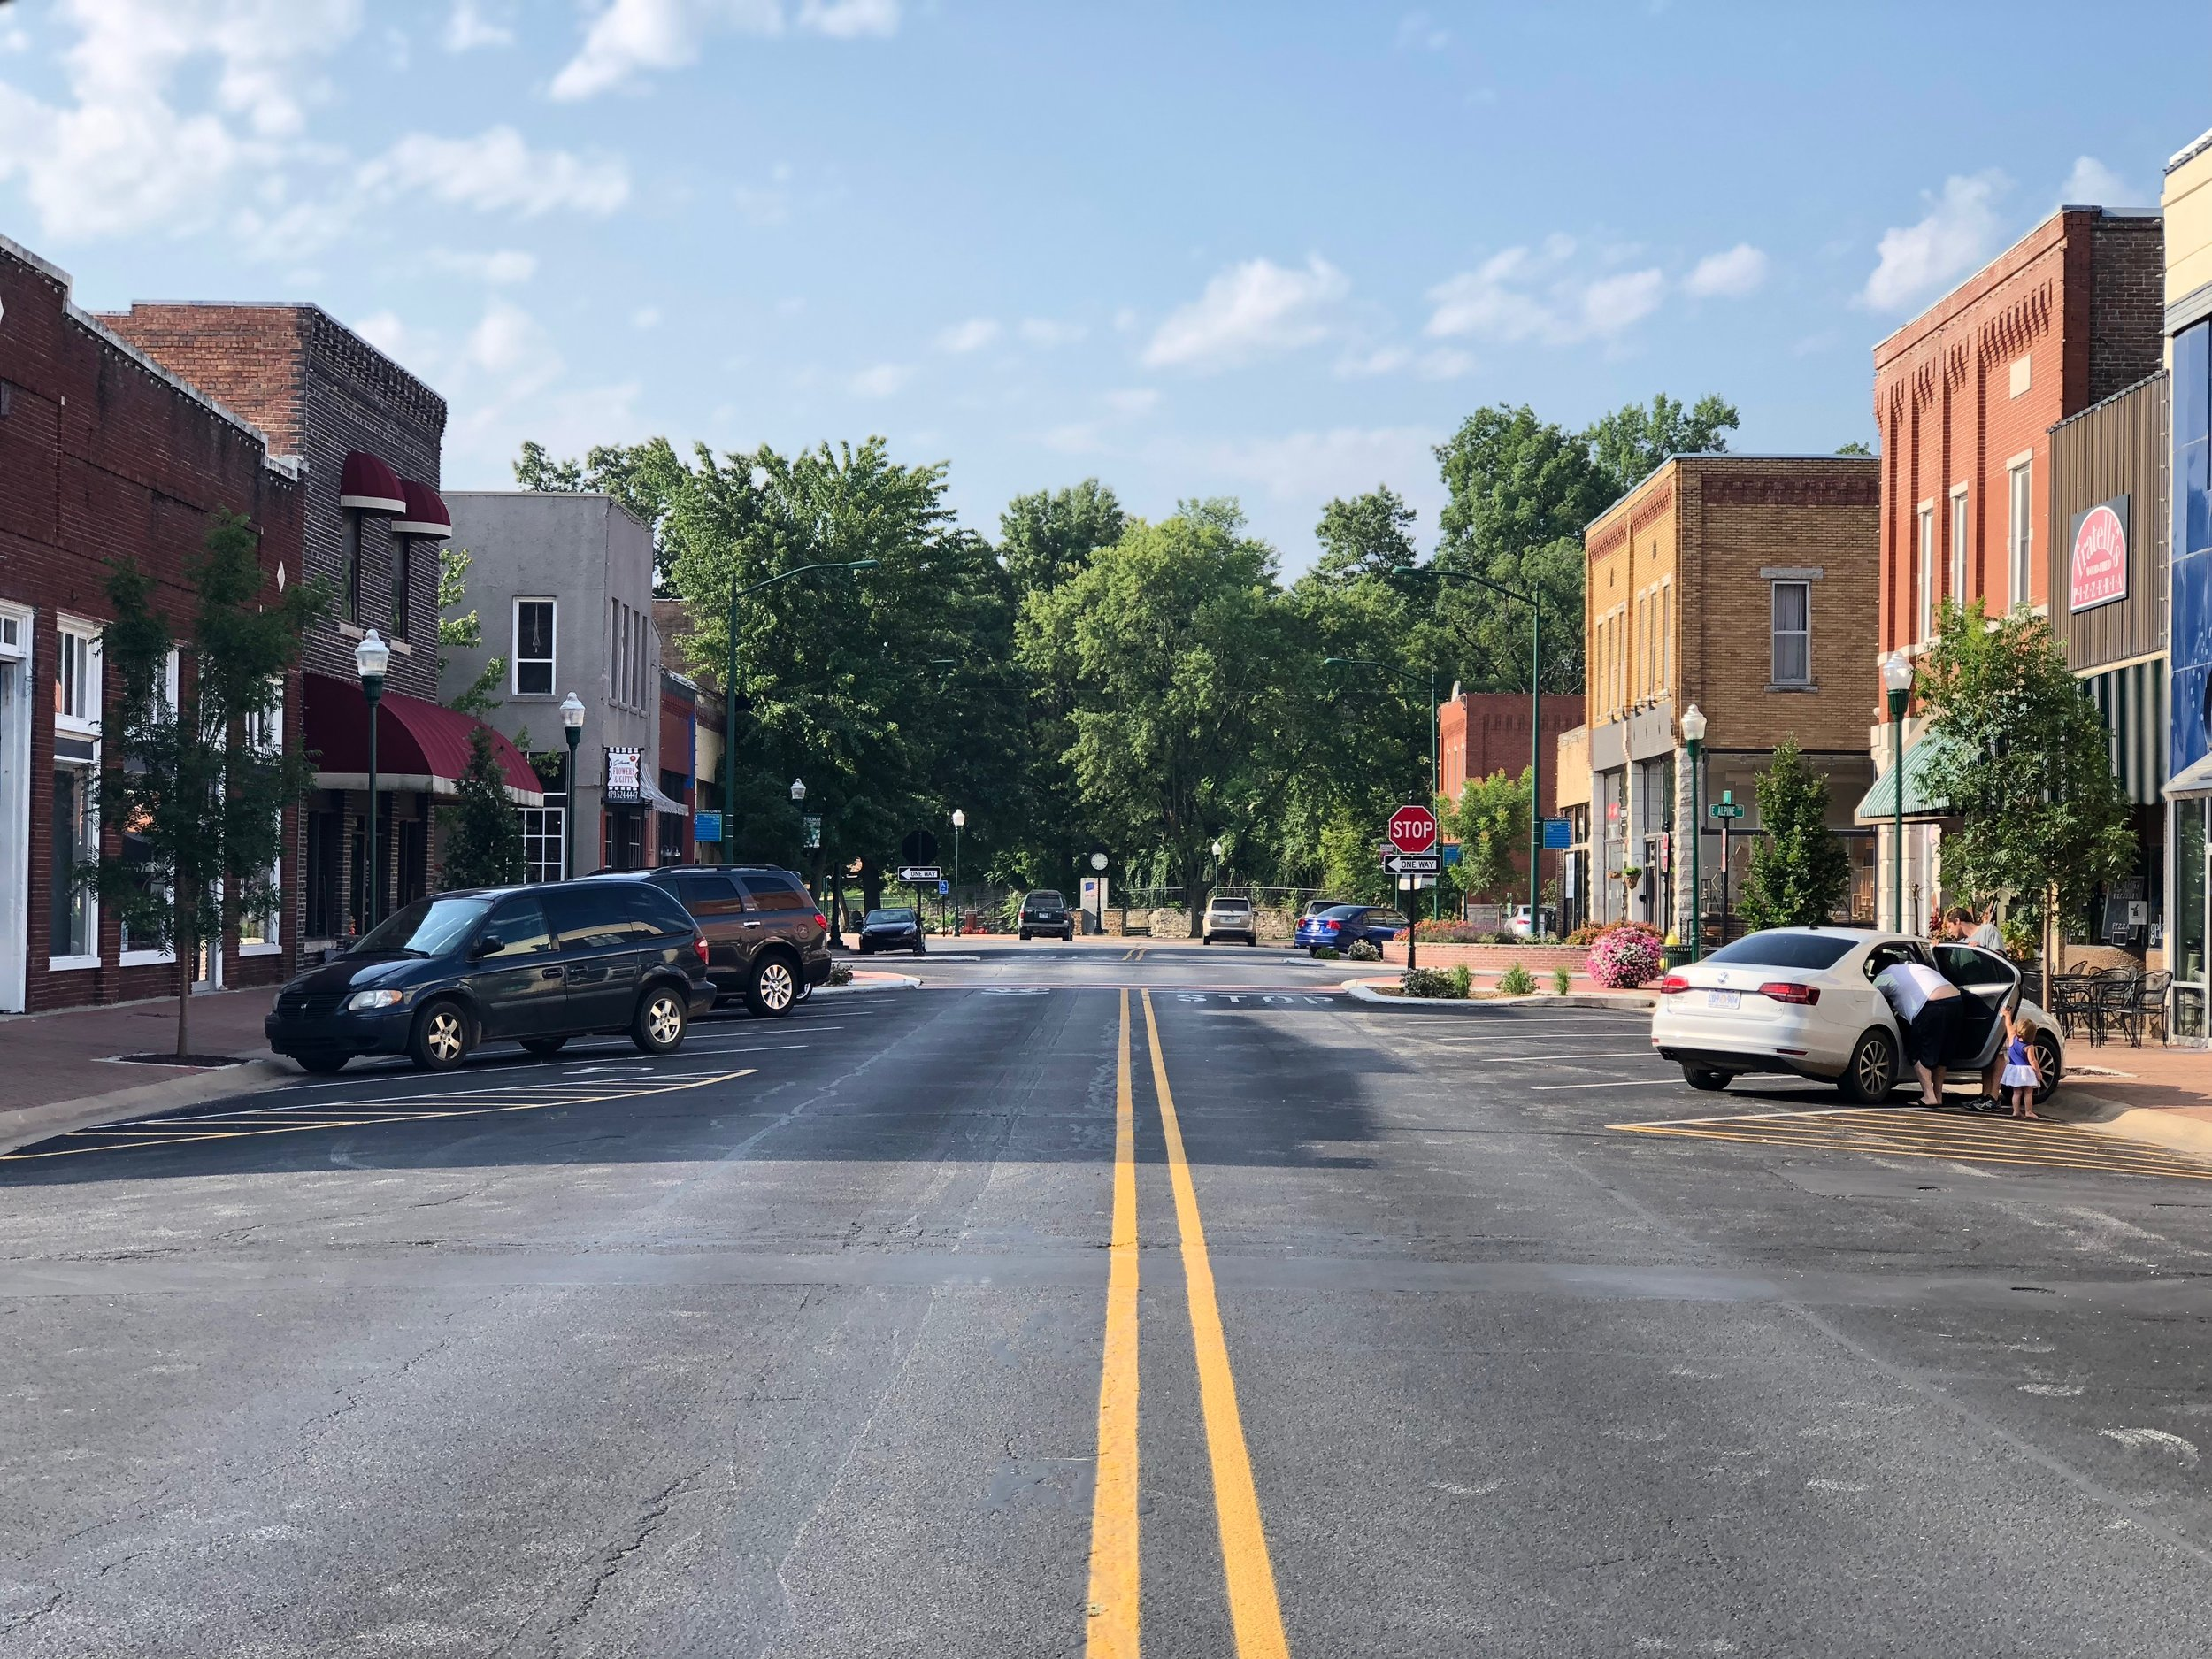 Siloam Springs blends quaint historic charm with new amenities, public art and community festivals.